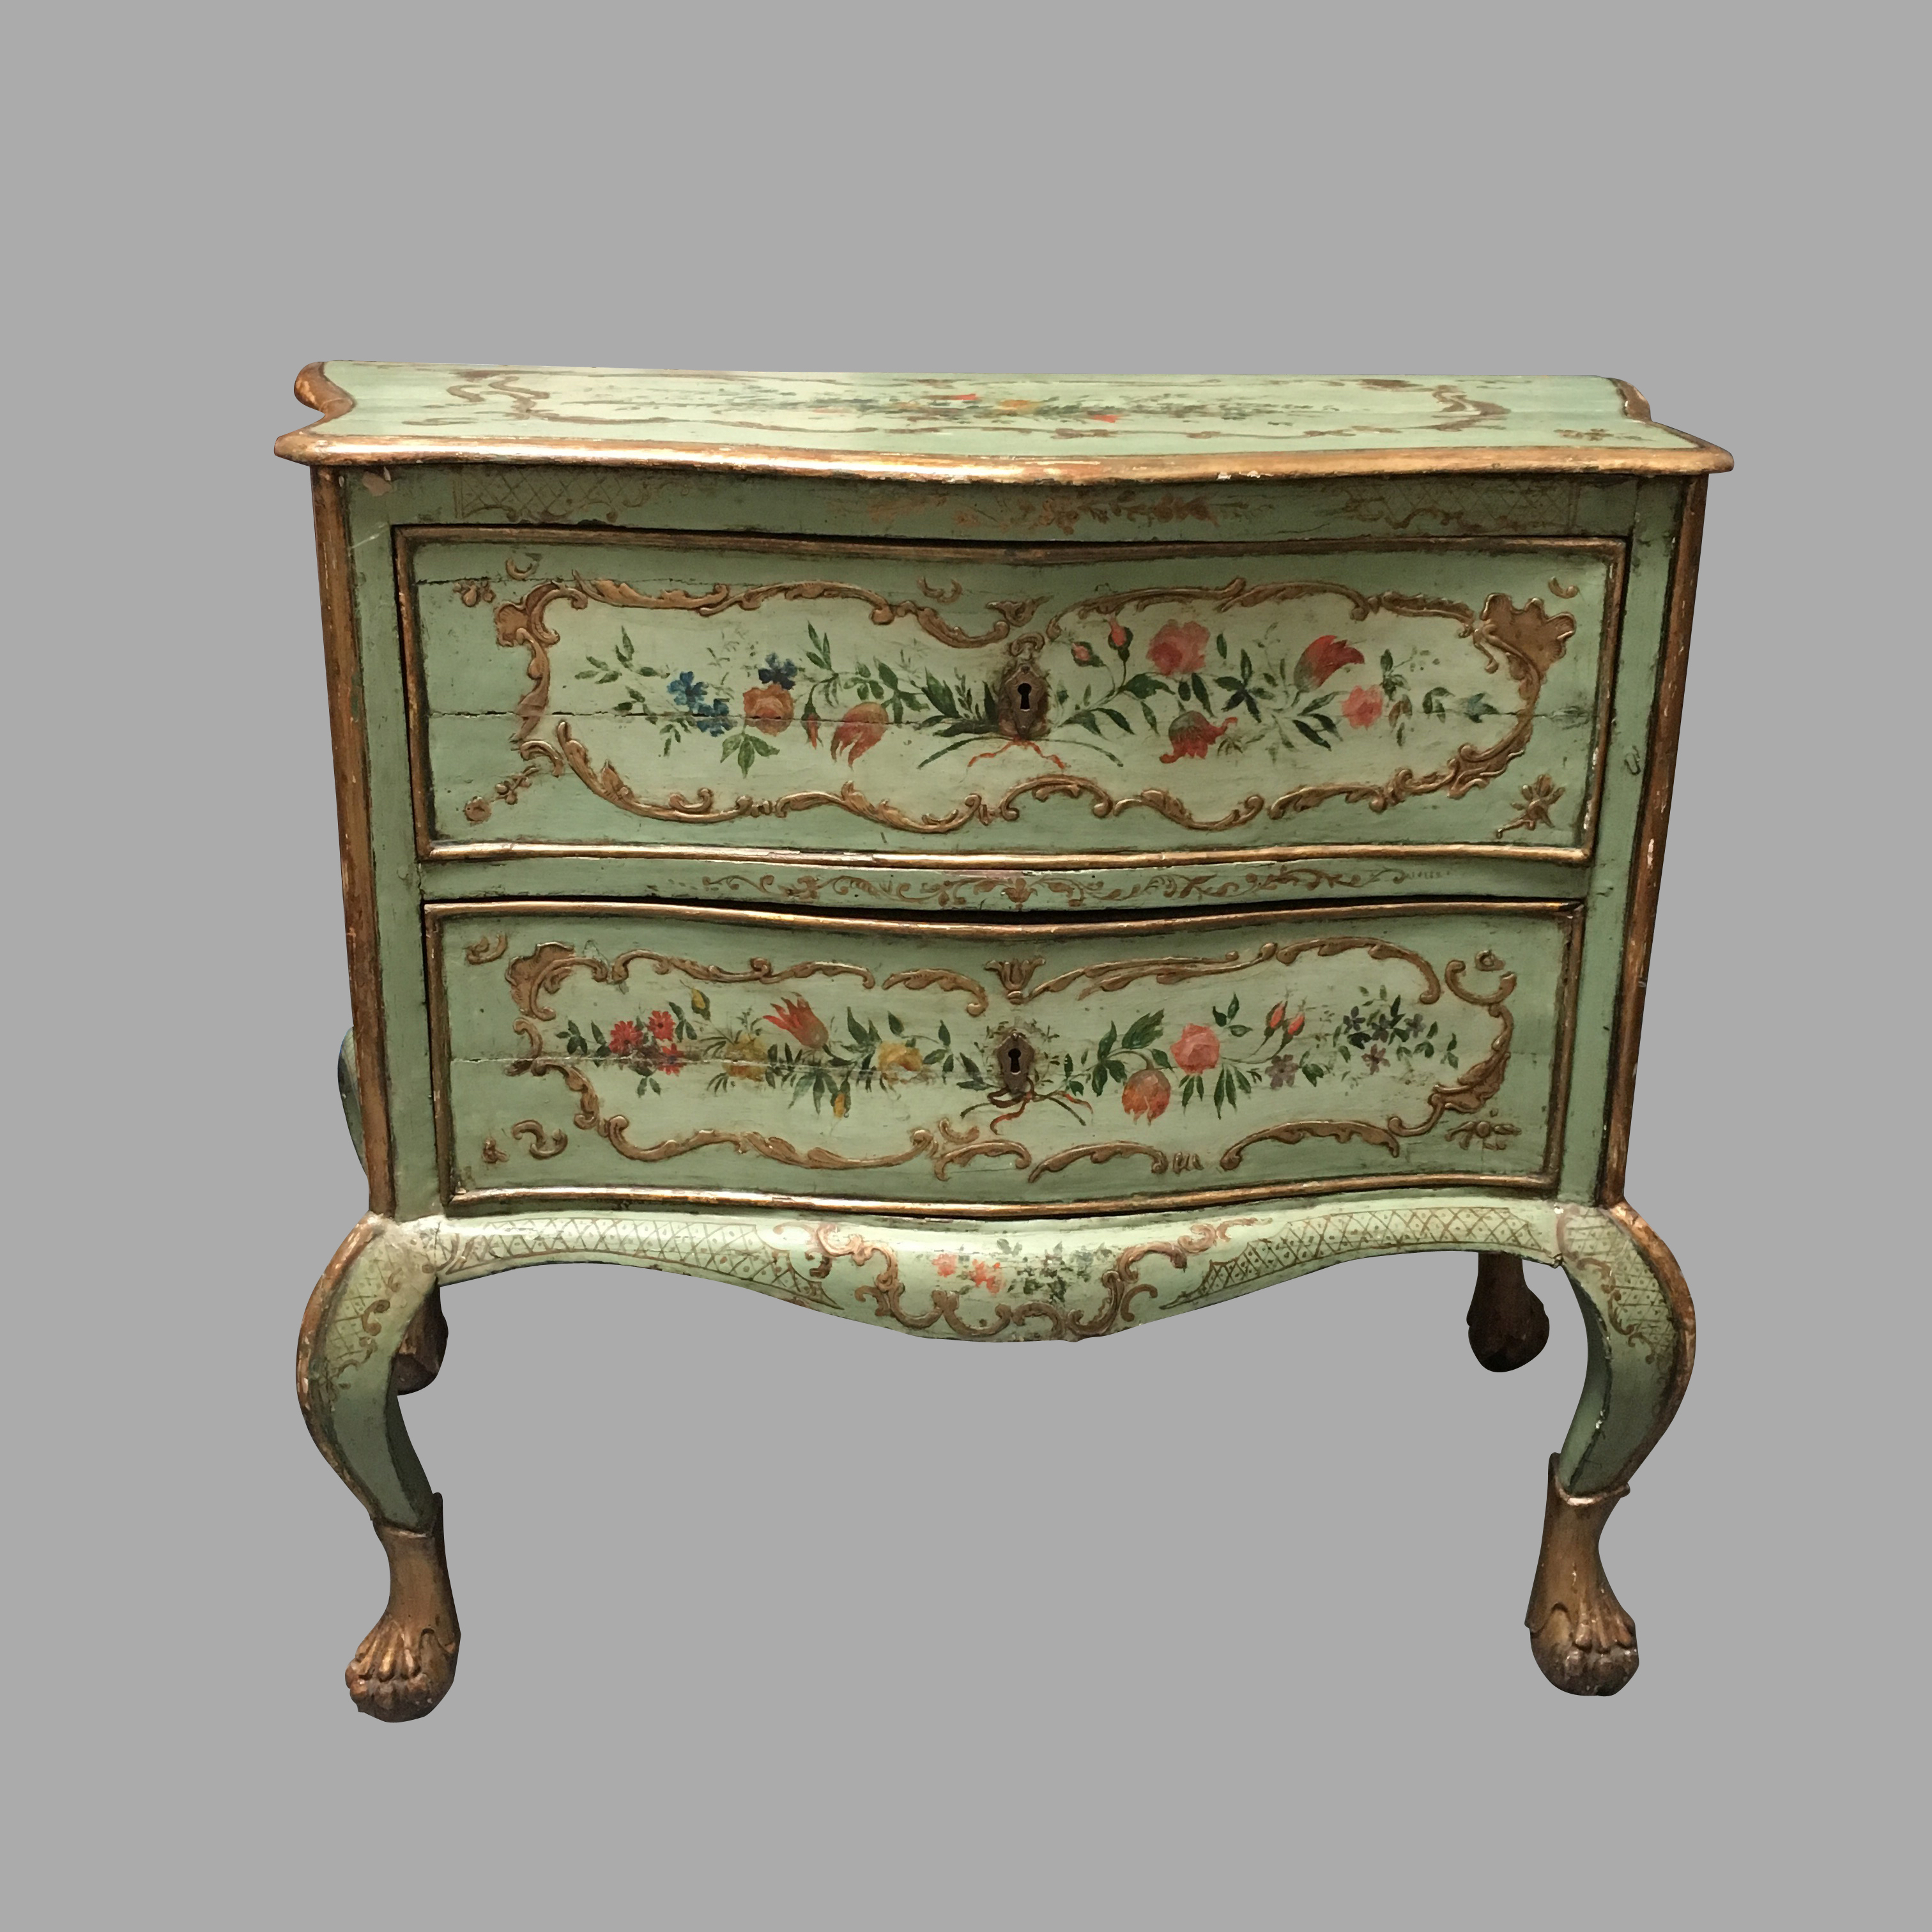 Italian Venetian Style Serpentine Painted Commode | DANIEL STEIN Antiques San Francisco CA